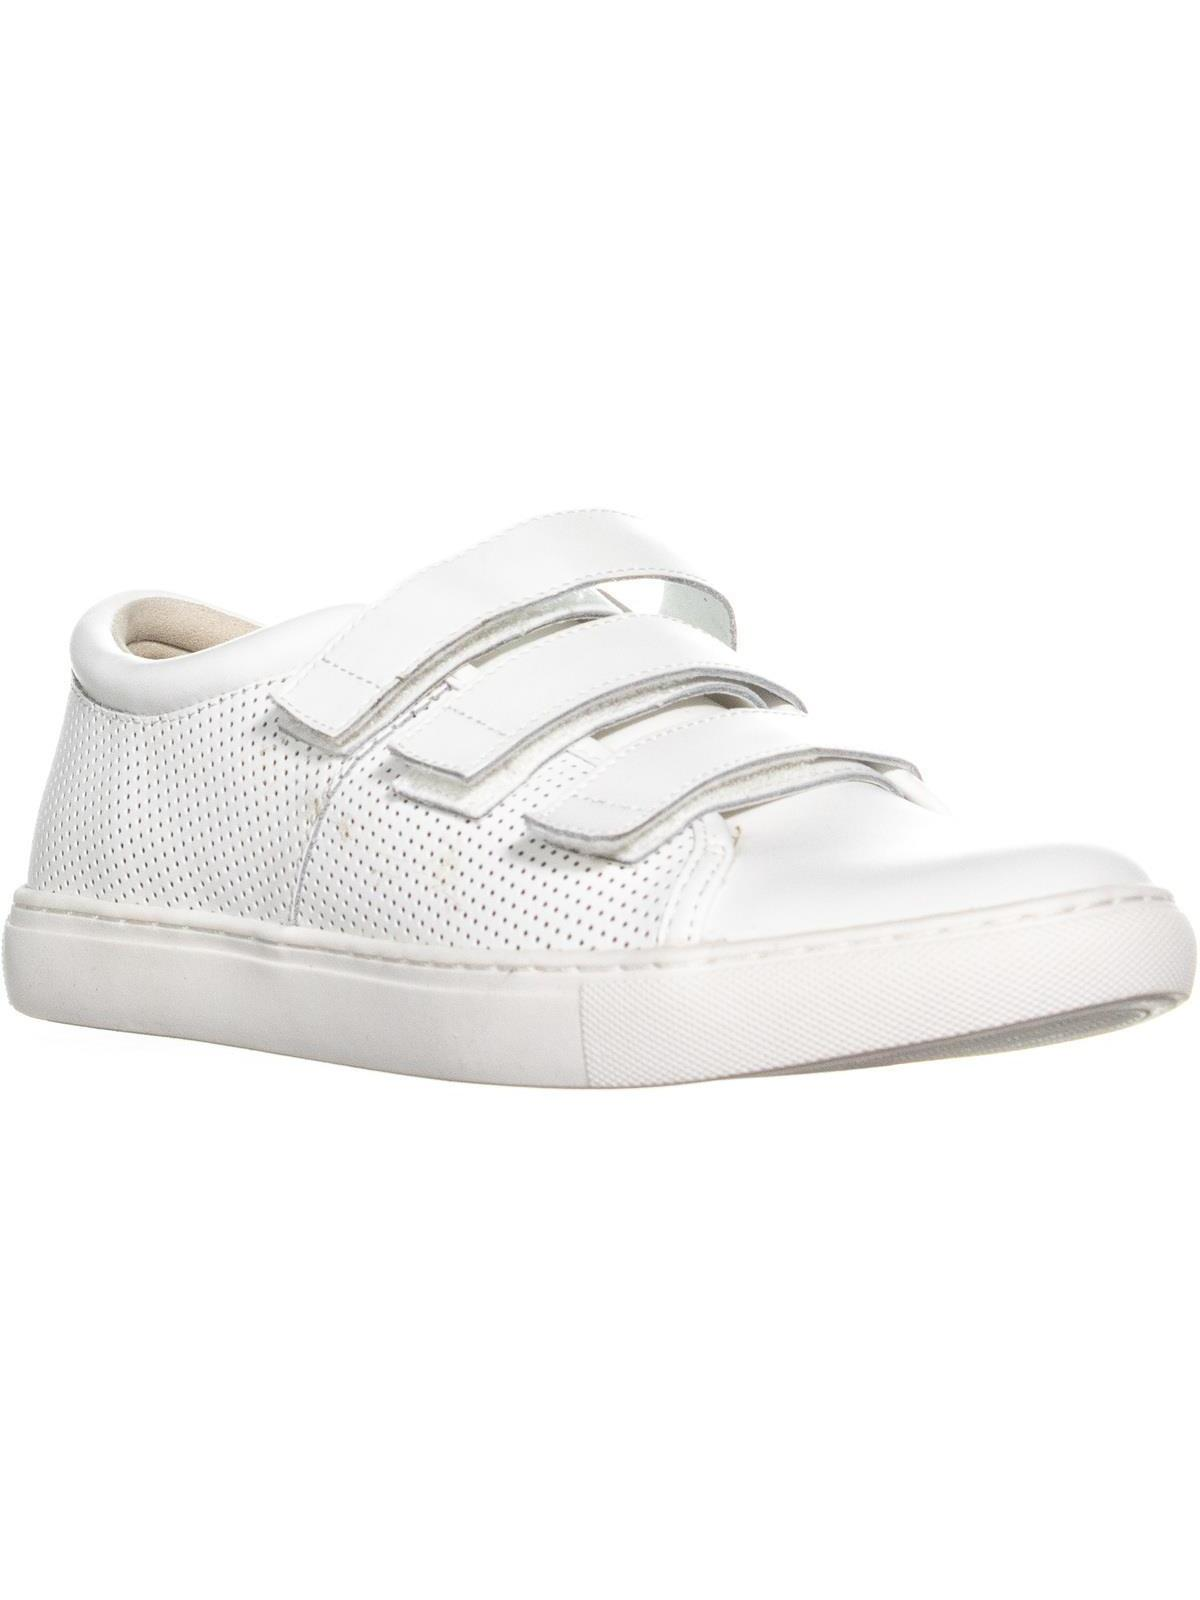 Womens Kenneth Cole REACTION Jovie Triple Strap Sneakers, White, 8 US / 39 EU